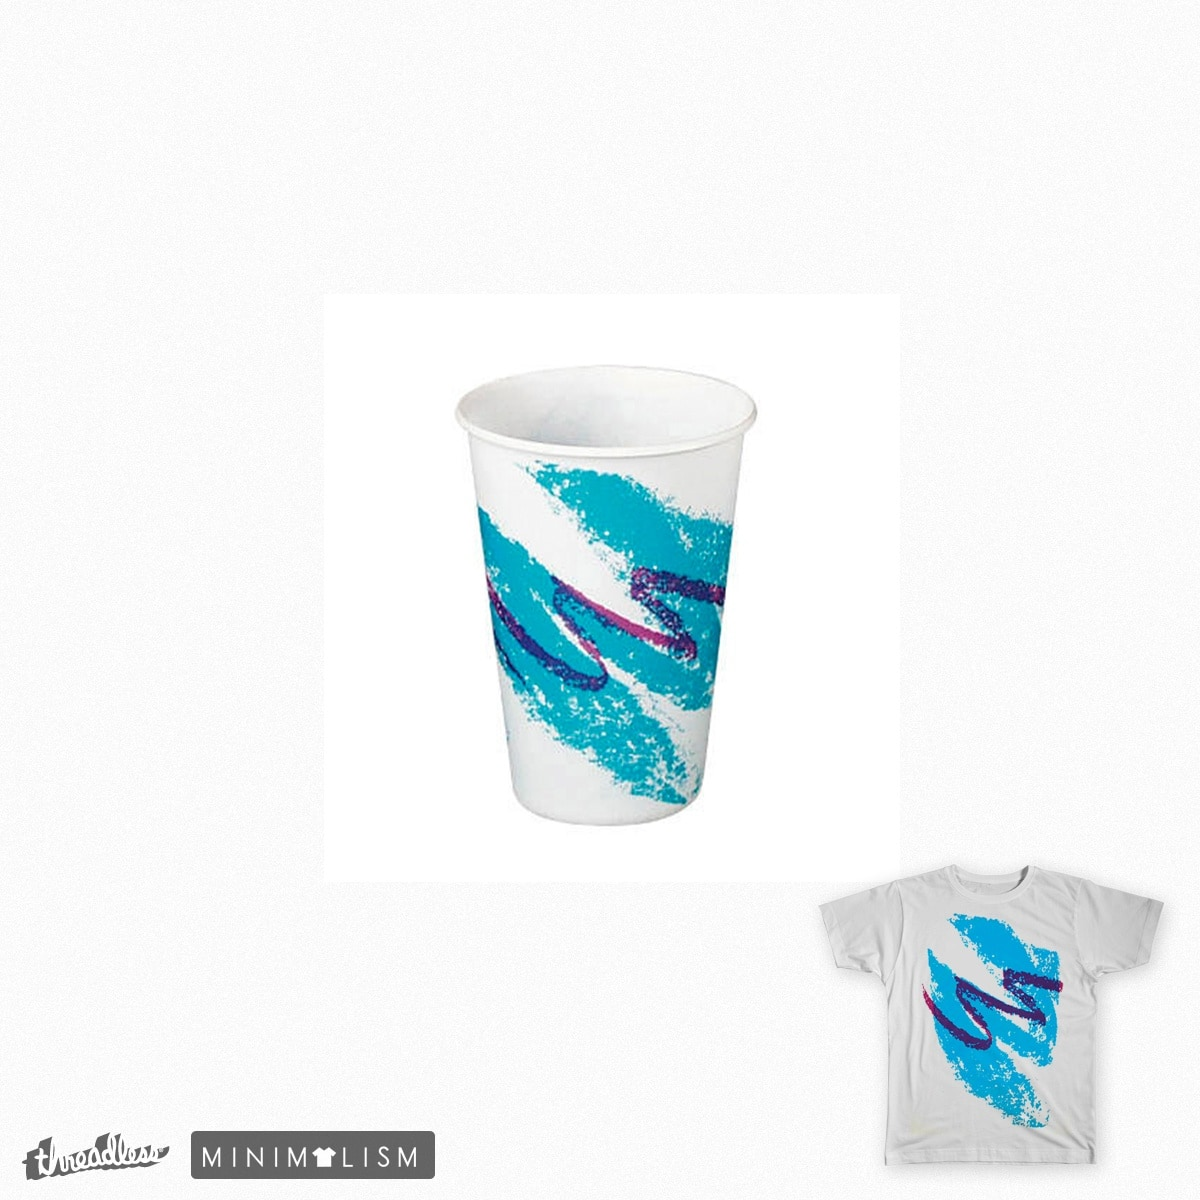 Jazz Cup by adrianherrera on Threadless